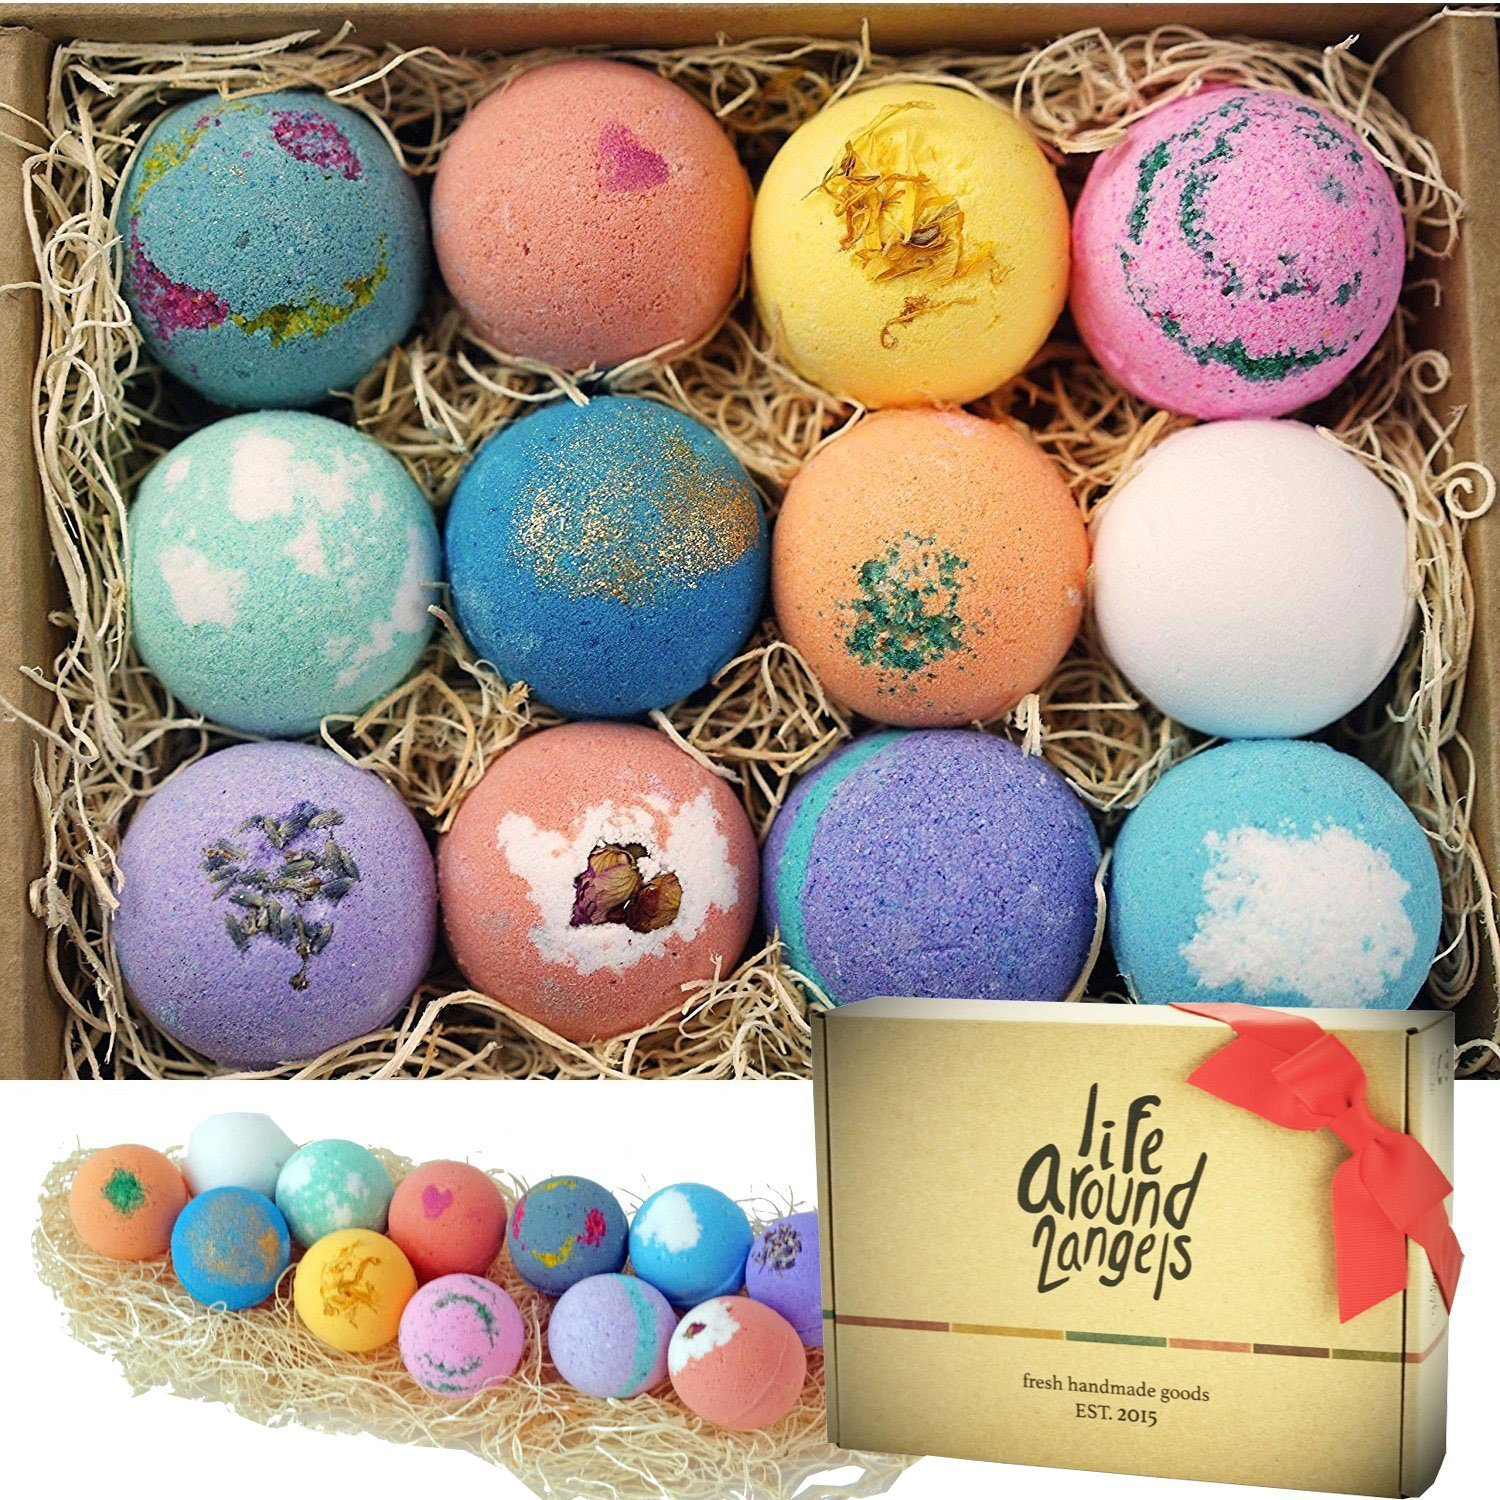 What are the benefits of a bath bomb